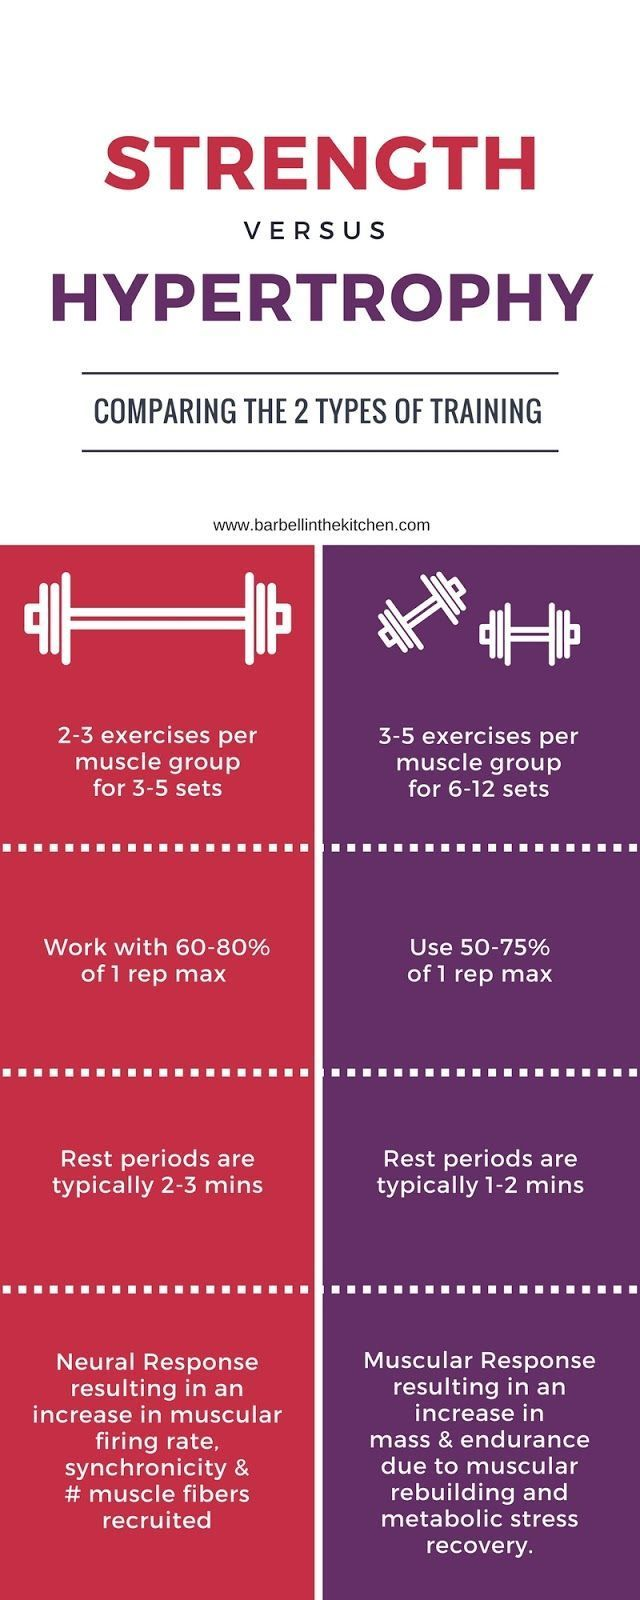 Important to understand that different types of training has